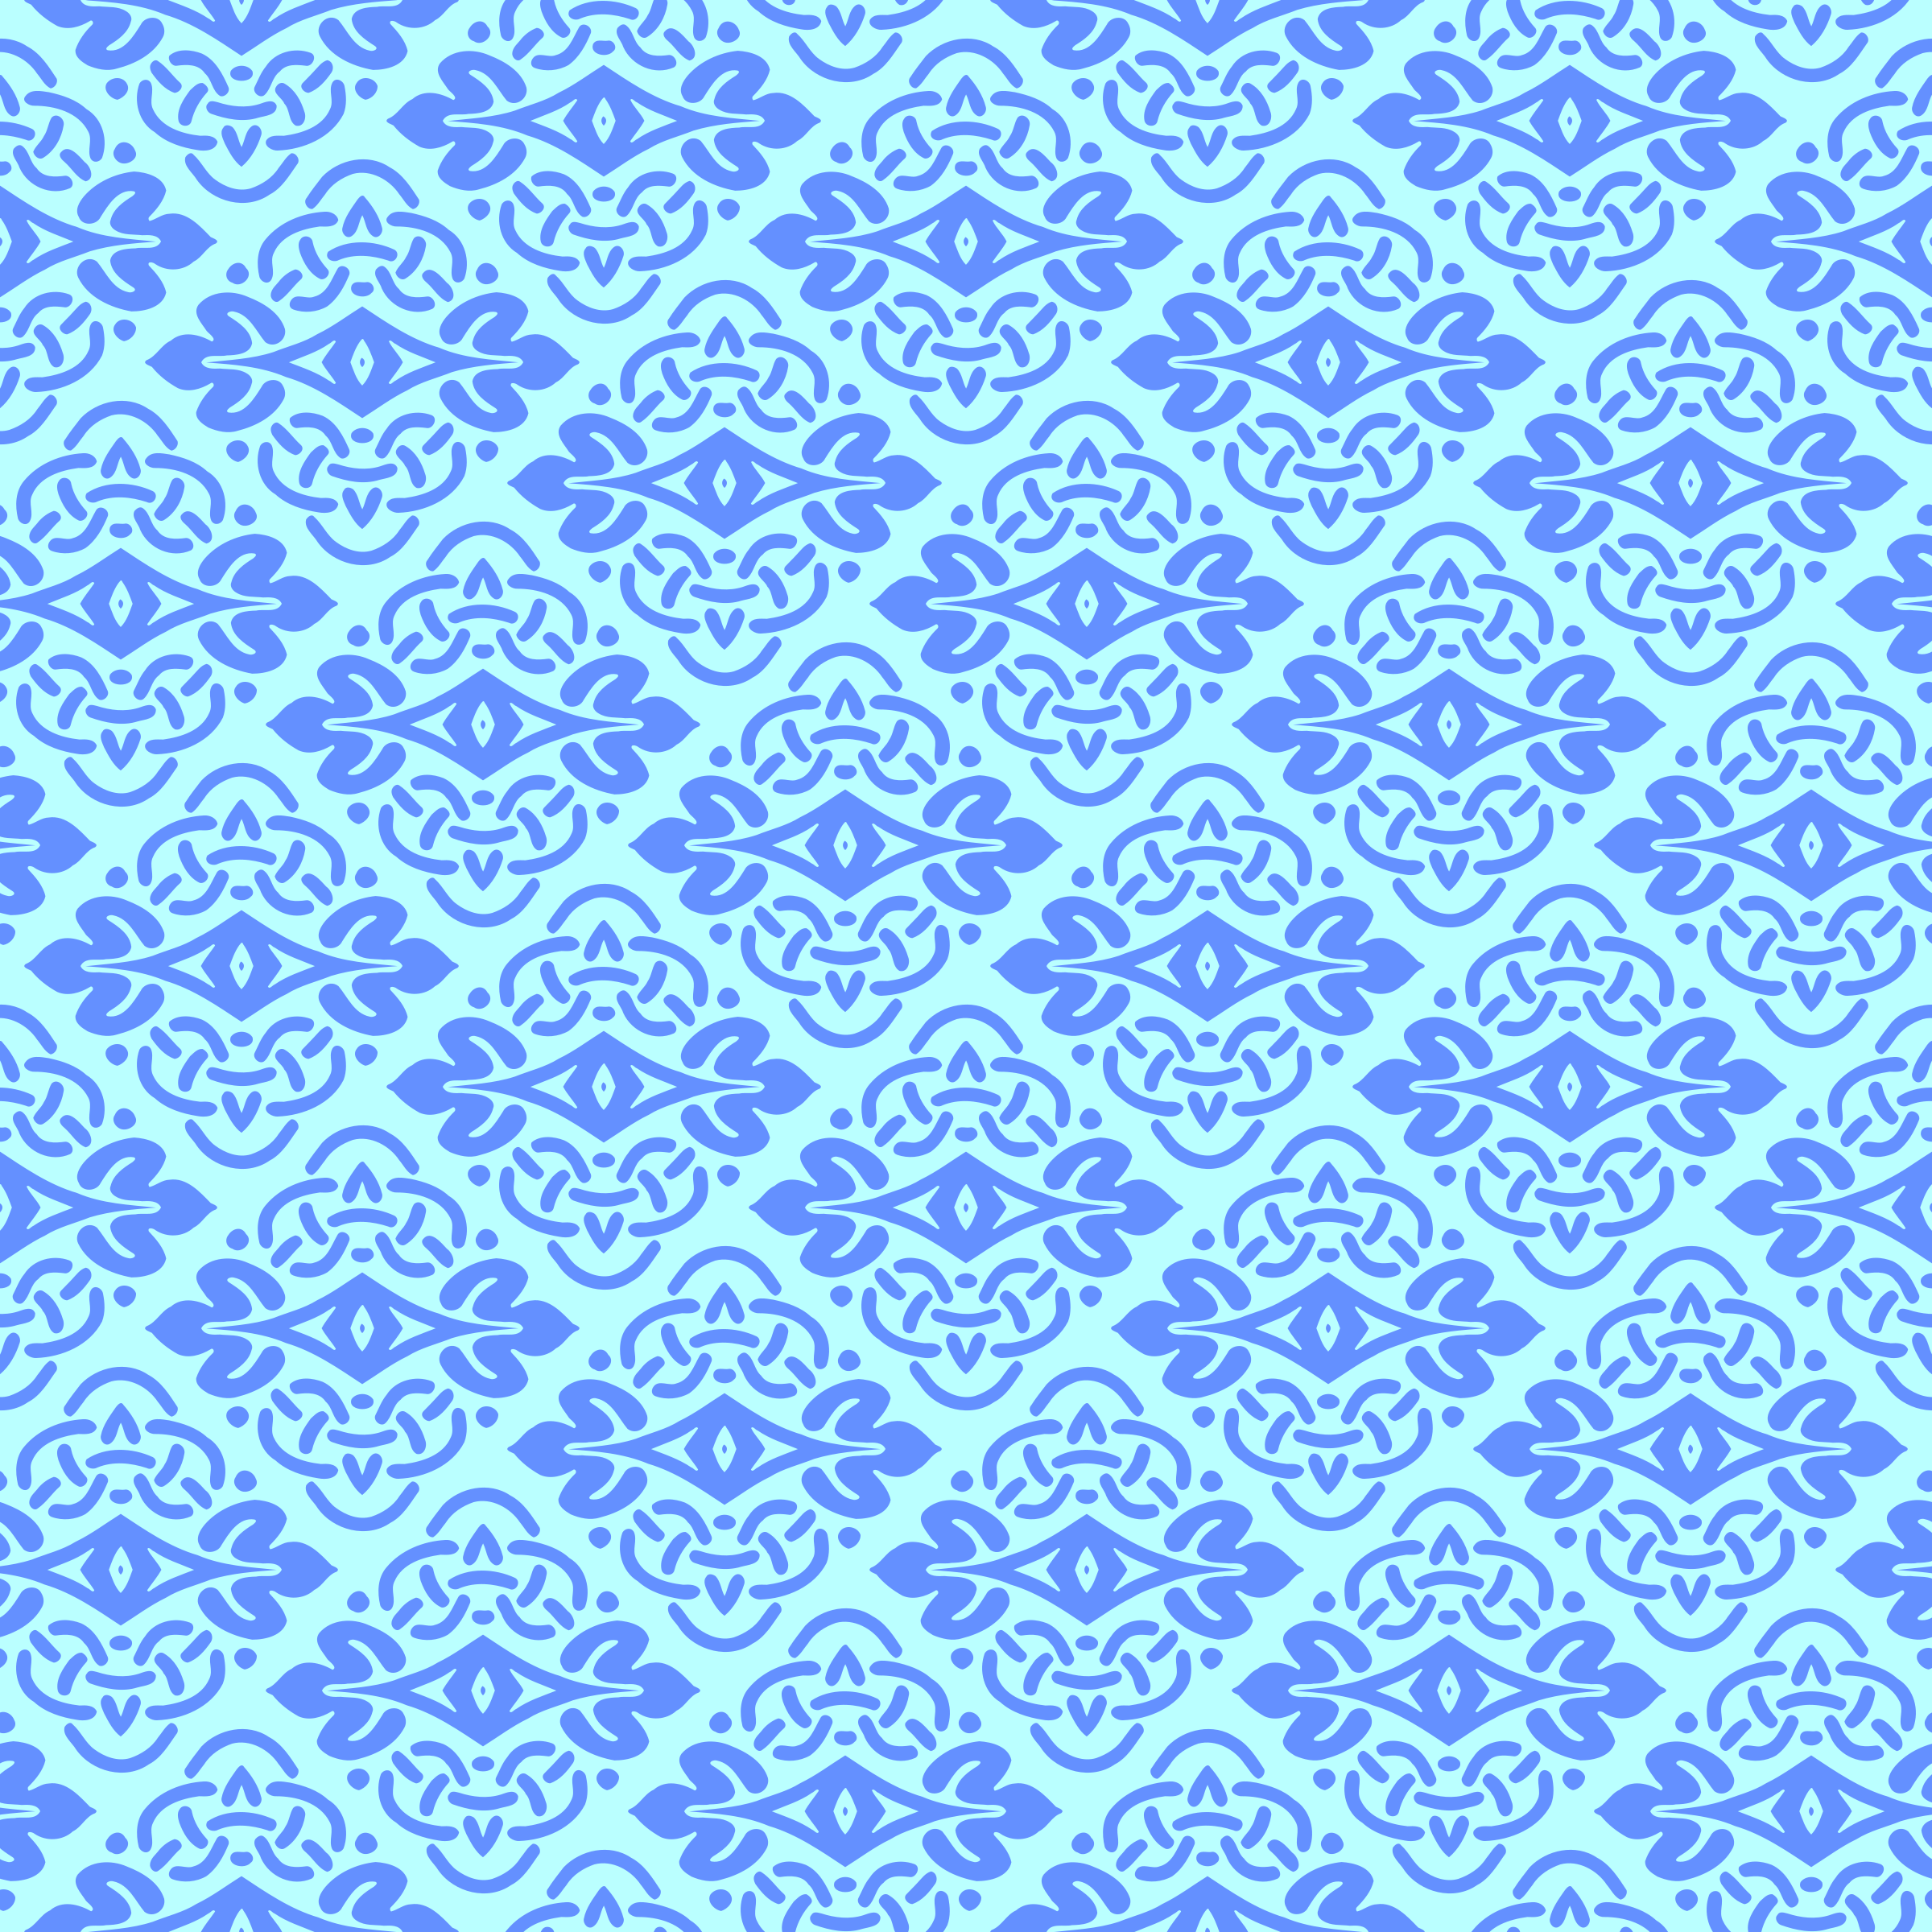 Background pattern 173 (colour 2) by Firkin